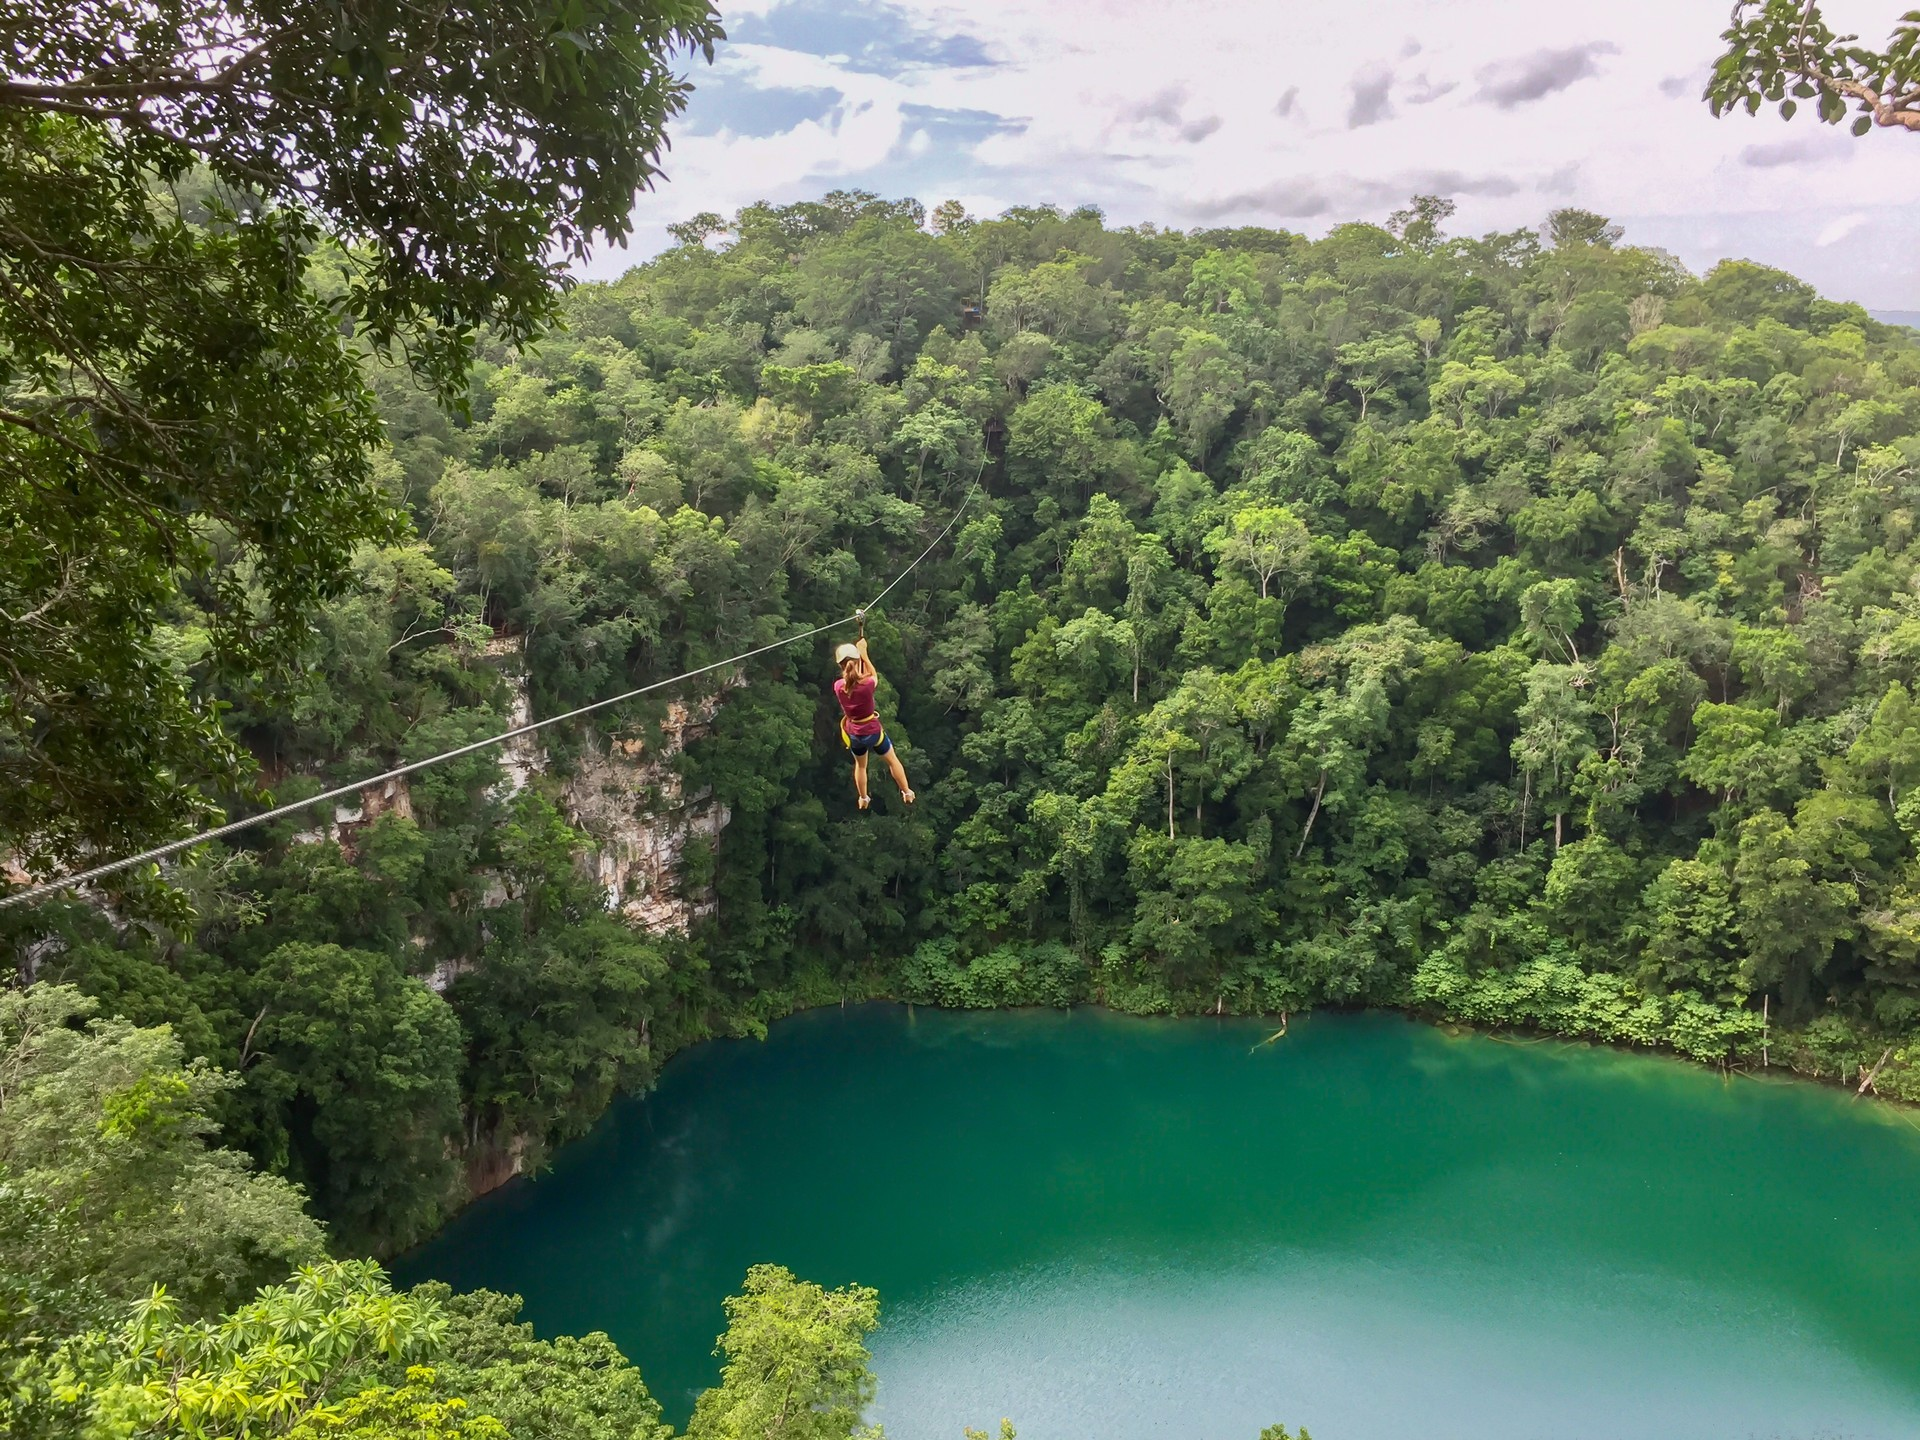 A girl zipwires across a cenote in the rainforest in Mexico